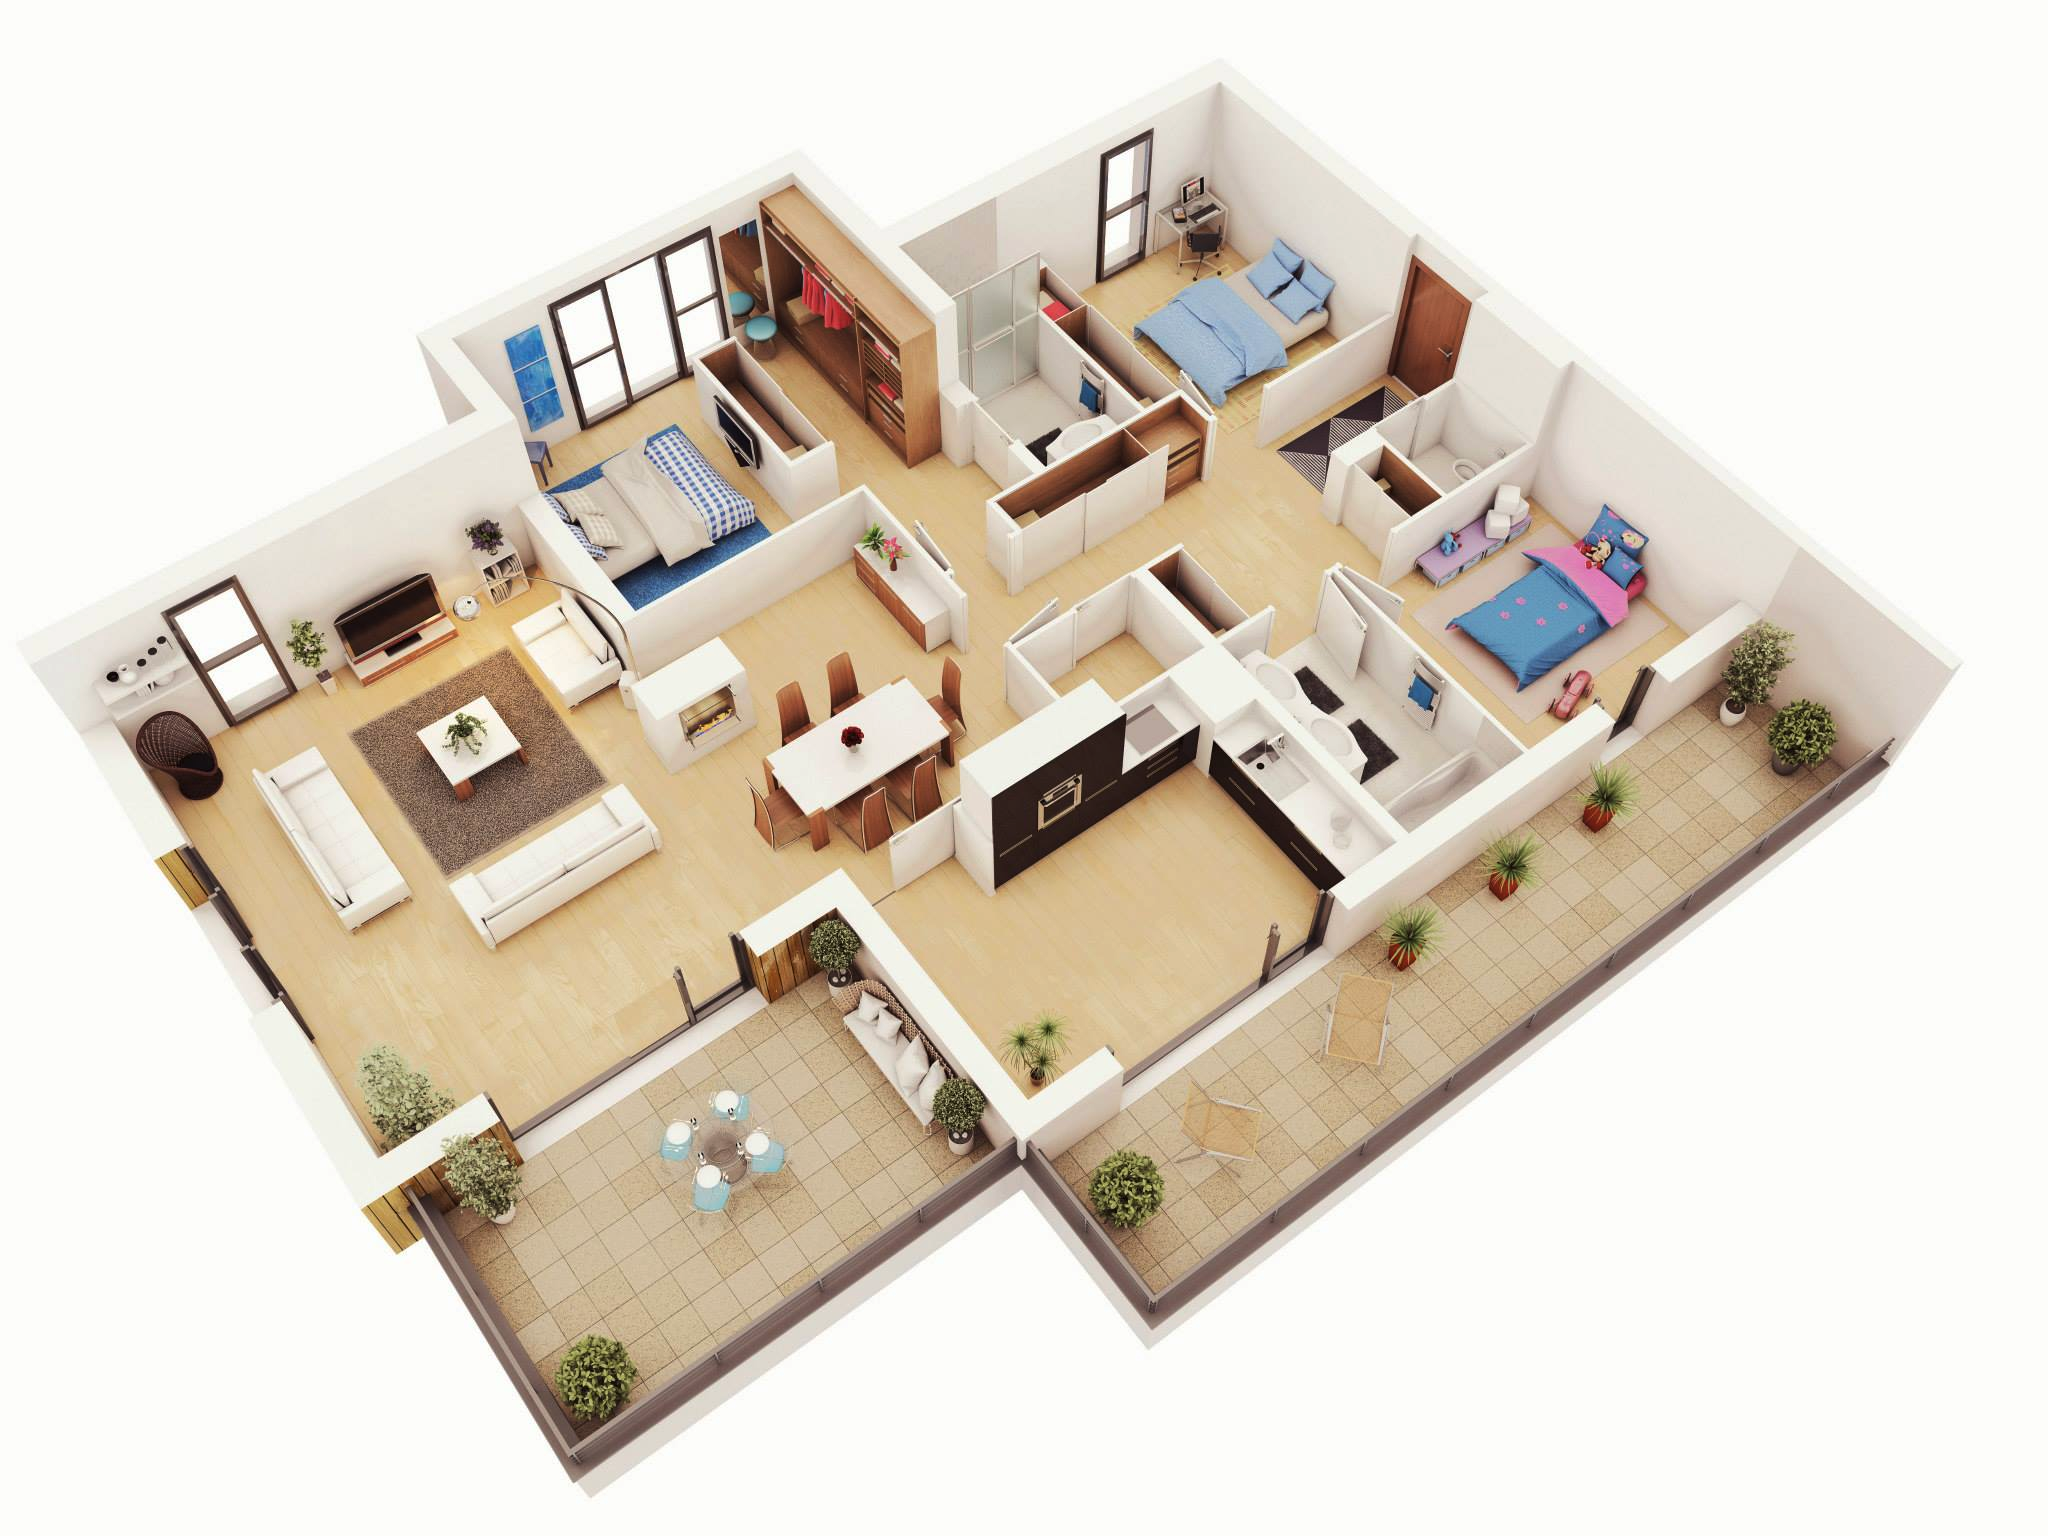 25 more 3 bedroom 3d floor plans architecture design House plans 3 bedroom 1 bathroom